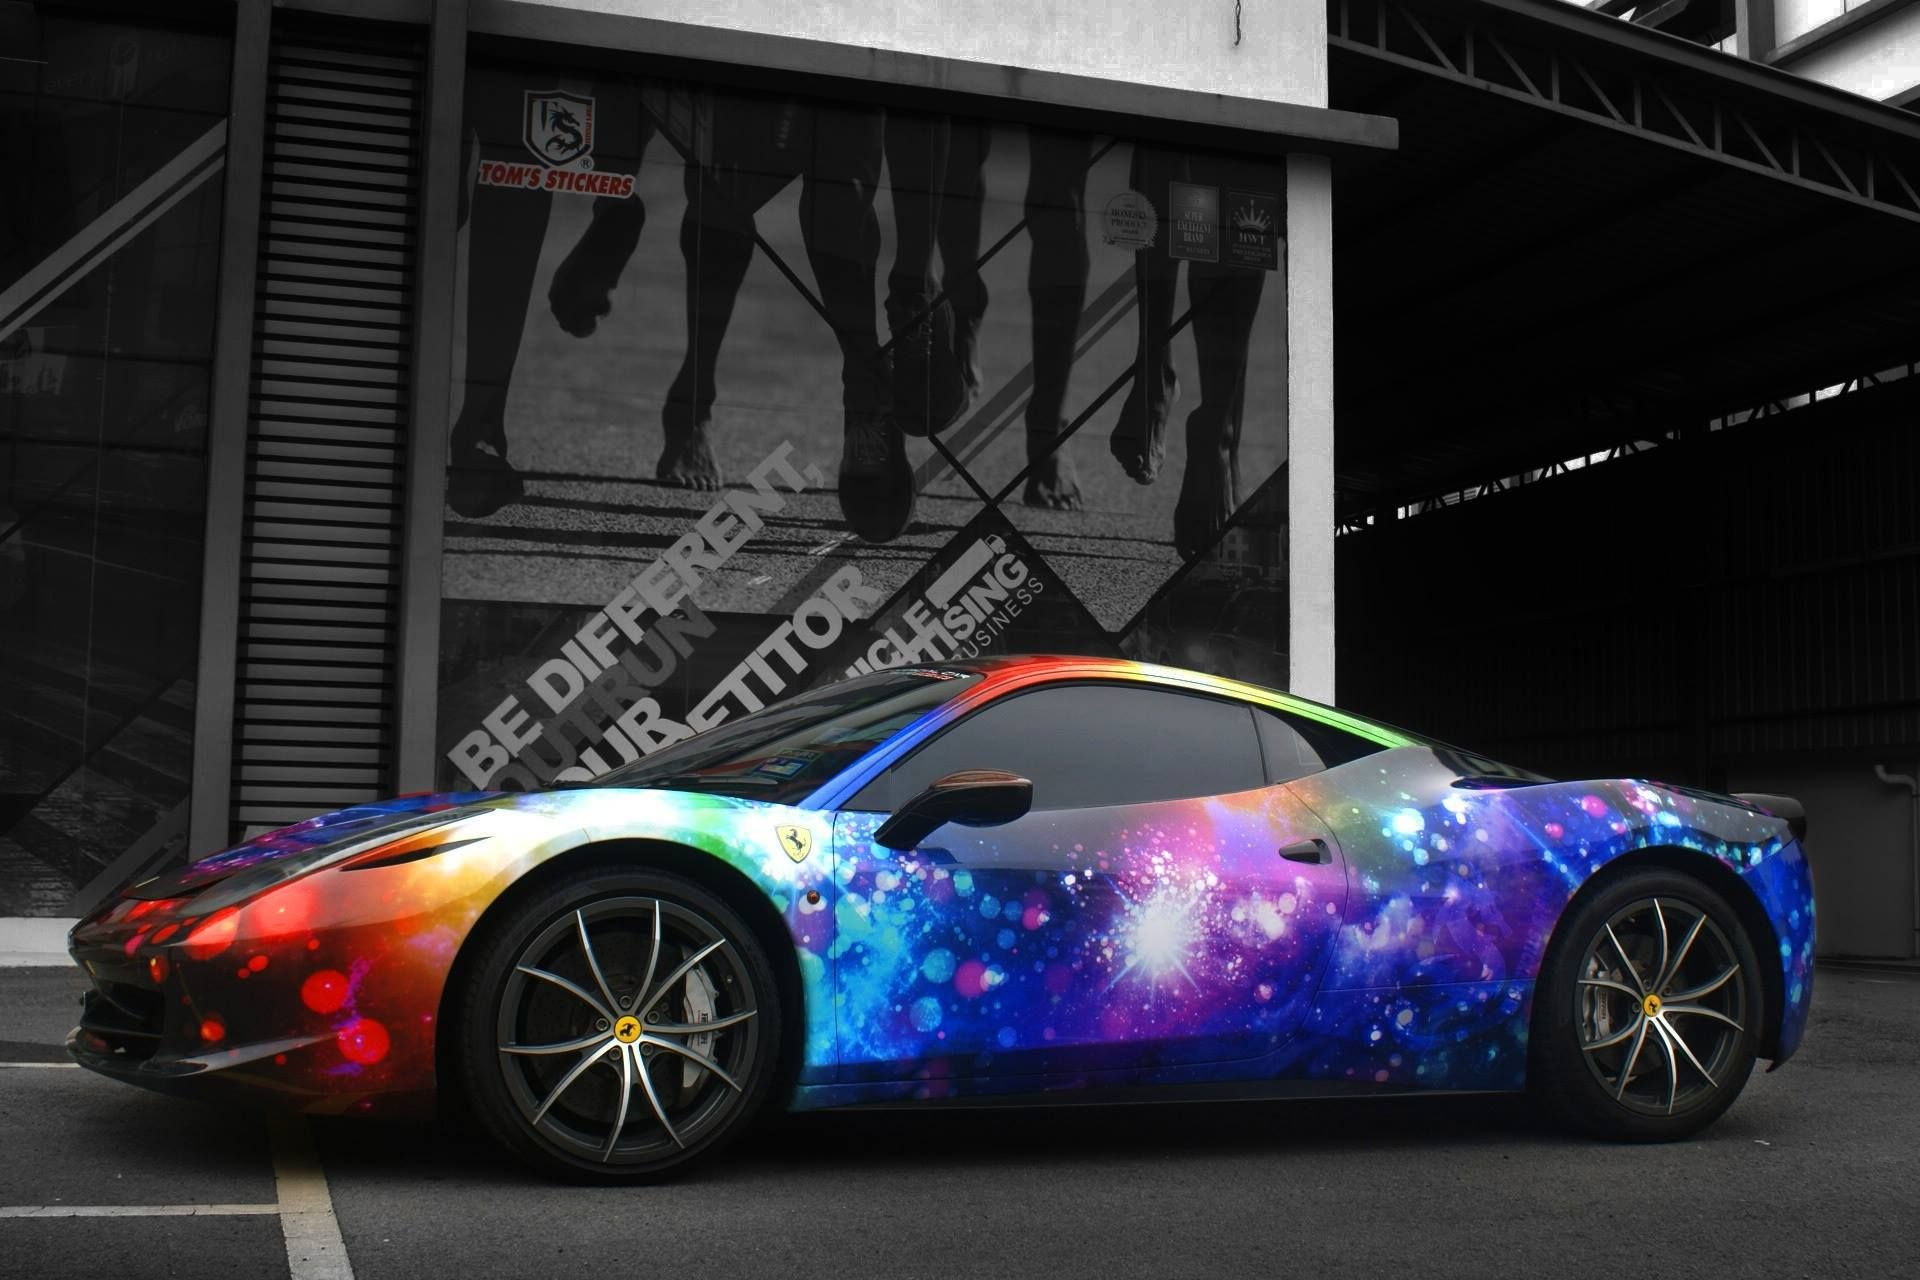 Car sticker design pinterest - Ferrari Full Wrap From Tom S Stickers